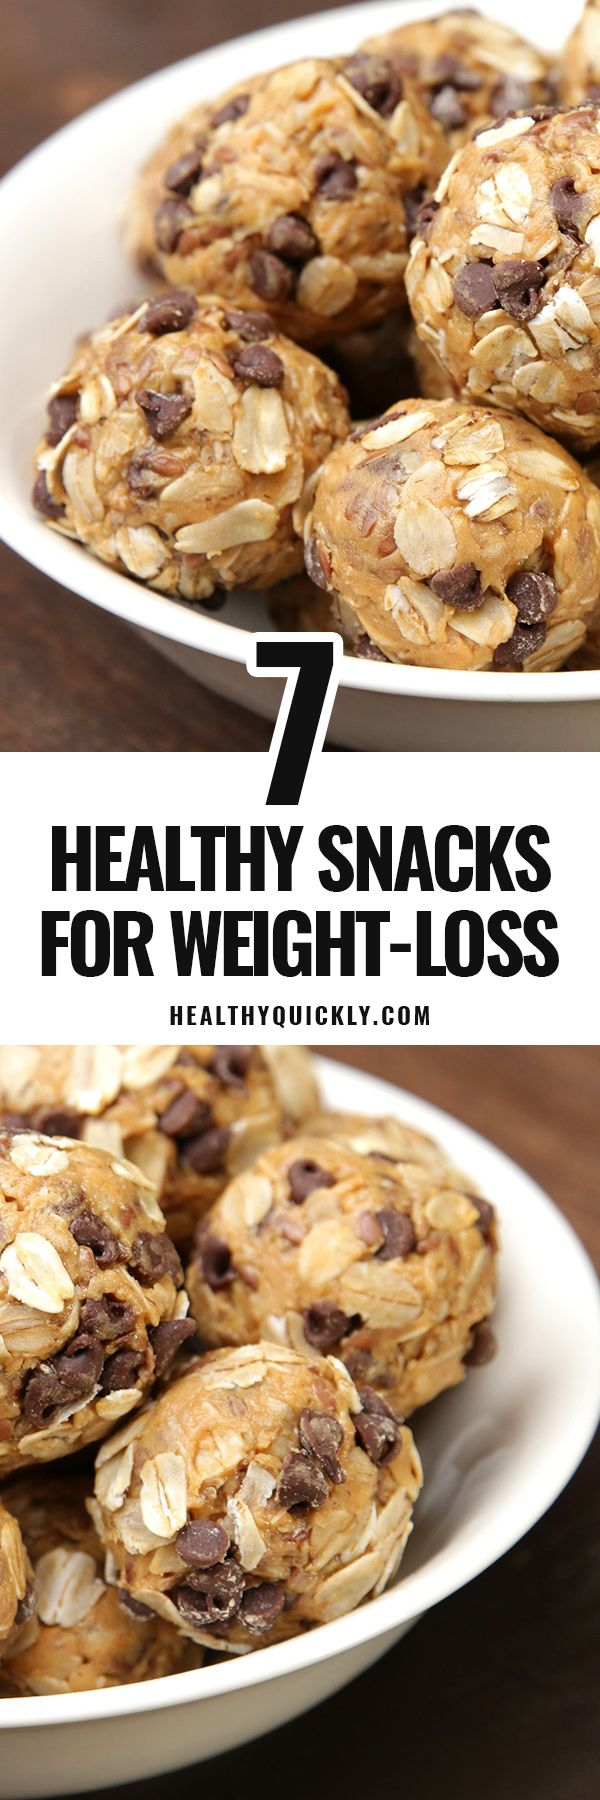 All about healthy snacks for weightloss. Best for clean eating, fat burning and to lose belly. Good for protein and some mostly low carb. Not all are gluten free but they are easy for diet, health and fitness. Includes peanut butter, under 100 calories healthy snacks for weightloss and they are perfect for families and breakfast recipes. Free printable included at website: http://healthyquickly.com/7-healthy-snacks-for-weightloss-easy-delicious